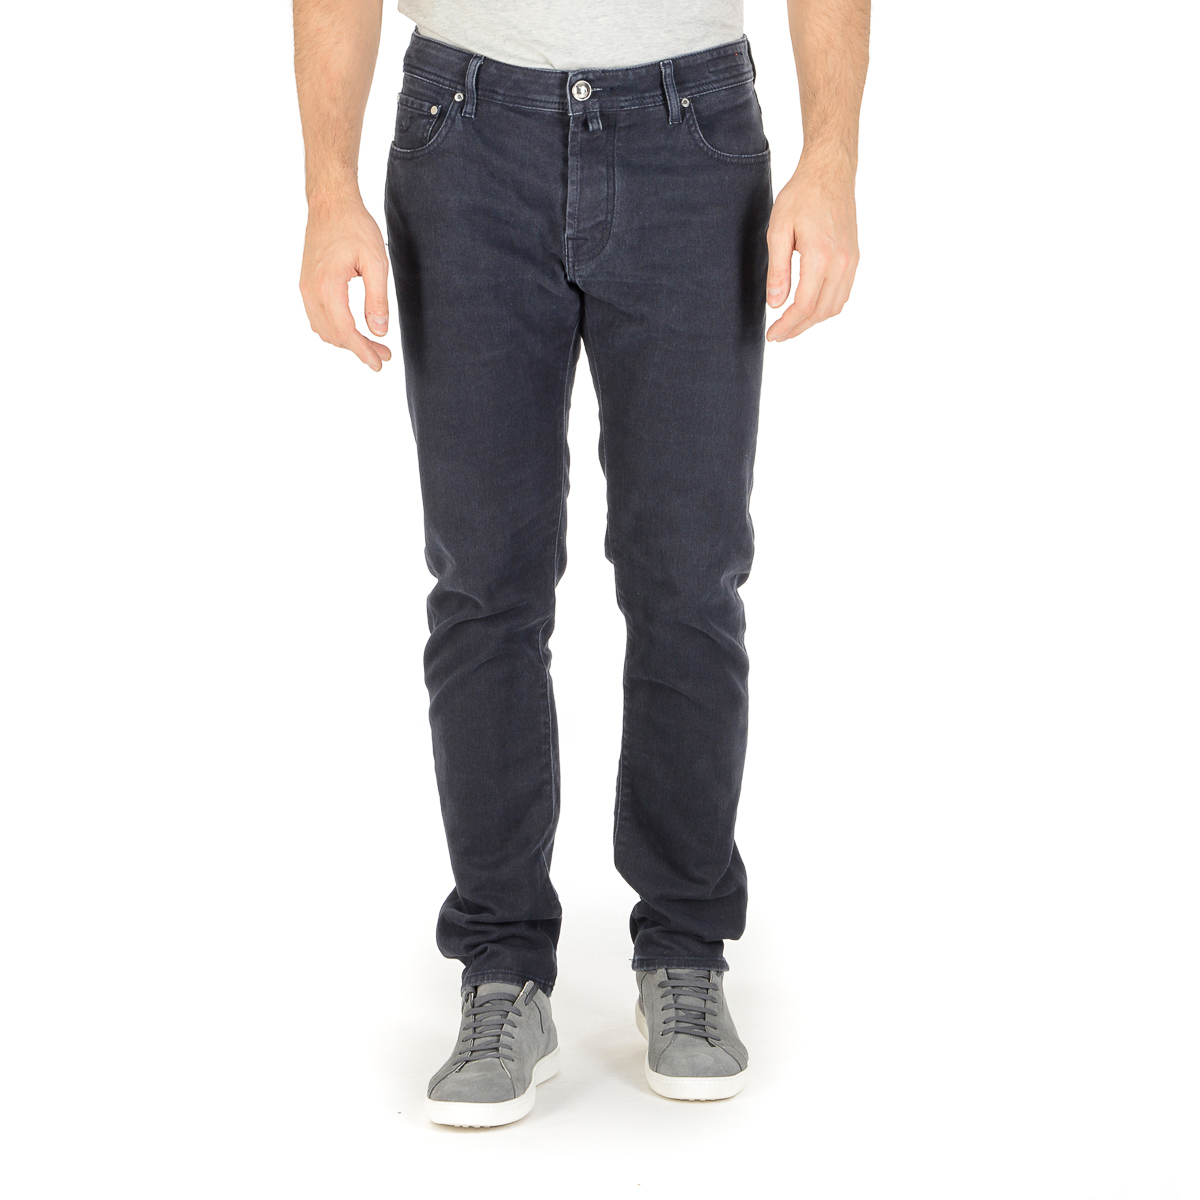 Primary image for Jacob Cohen Mens Jeans J688 Dark Blue